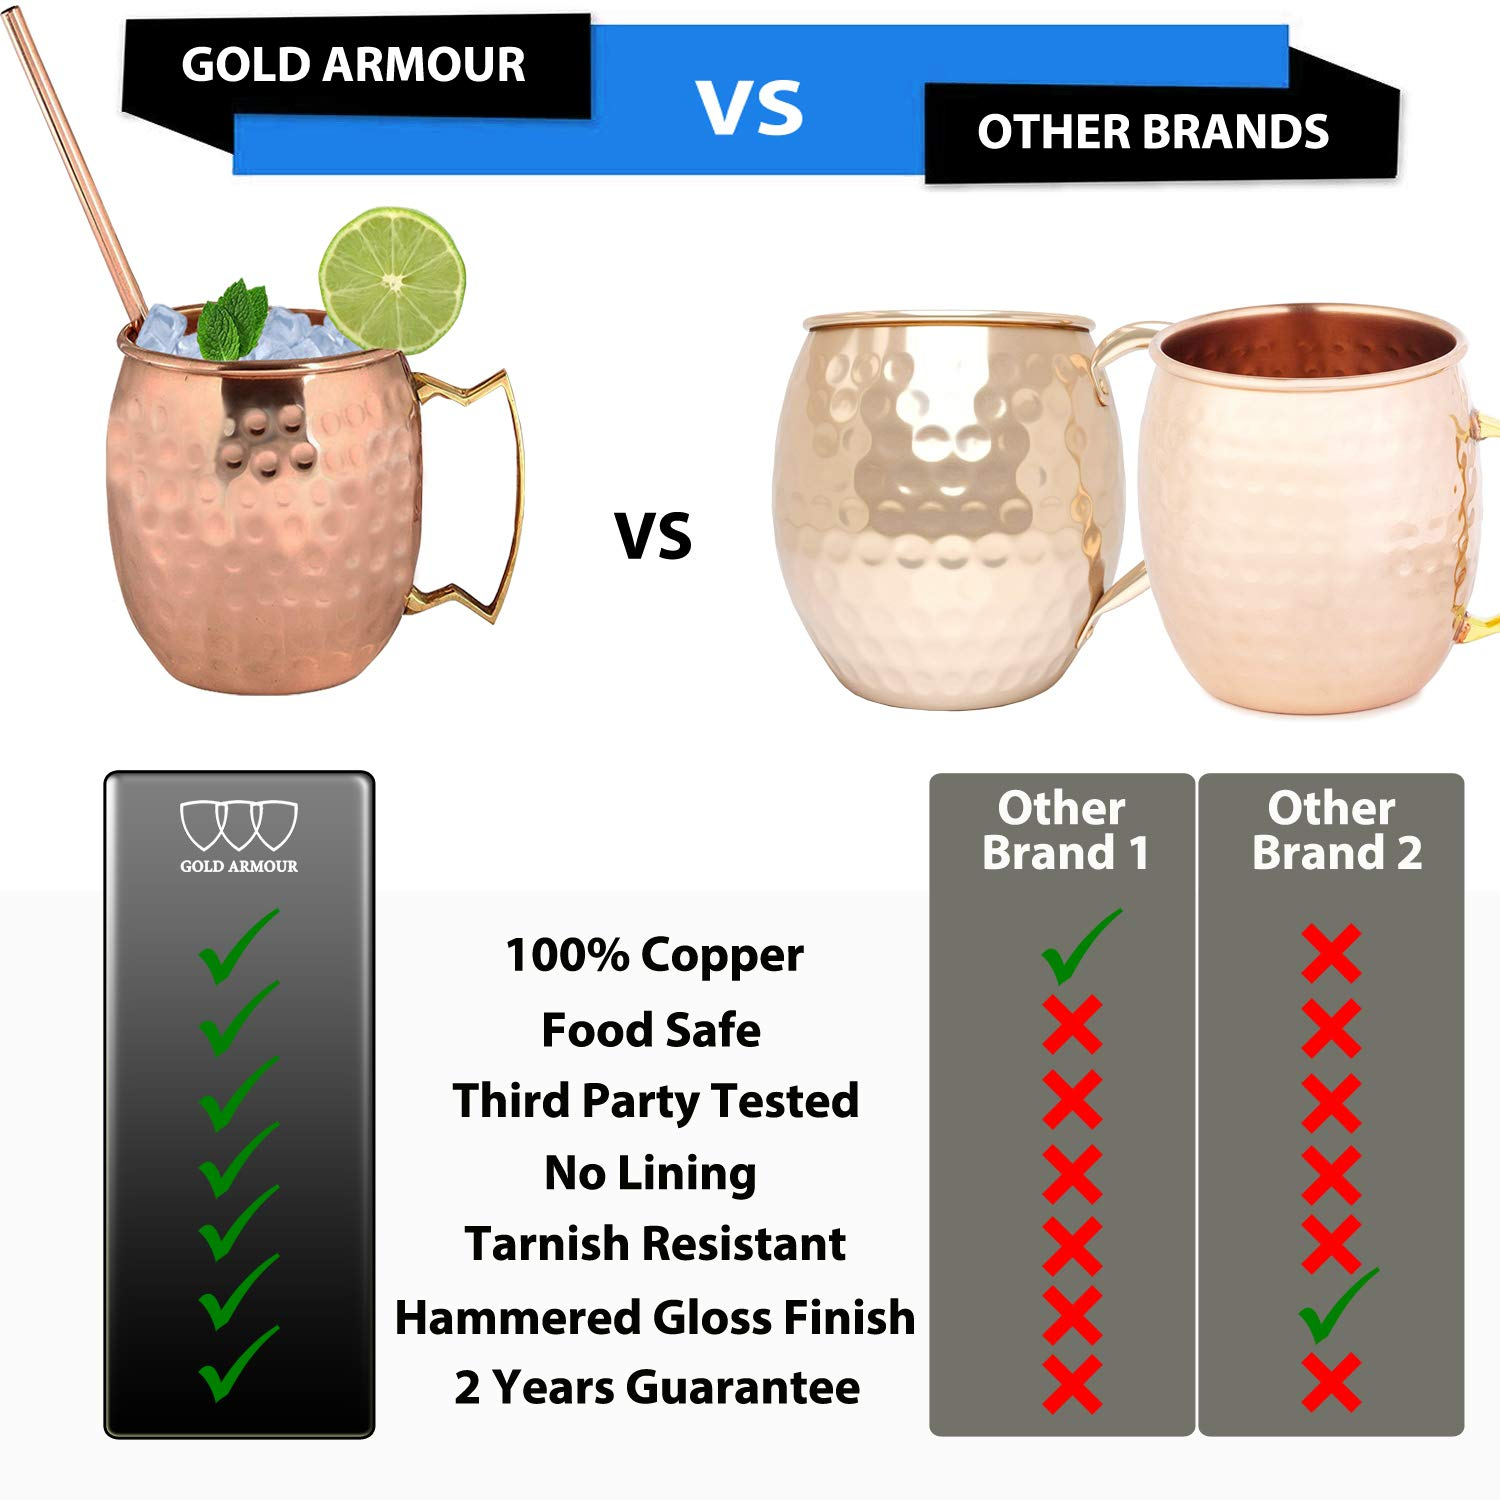 Moscow Mule Copper Mugs - Set of 4-100% HANDCRAFTED - Food Safe Pure Solid Copper Mugs - 16 oz Gift Set with BONUS: Highest Quality Cocktail Copper Straws and Jigger! (Copper) by Gold Armour (Image #3)